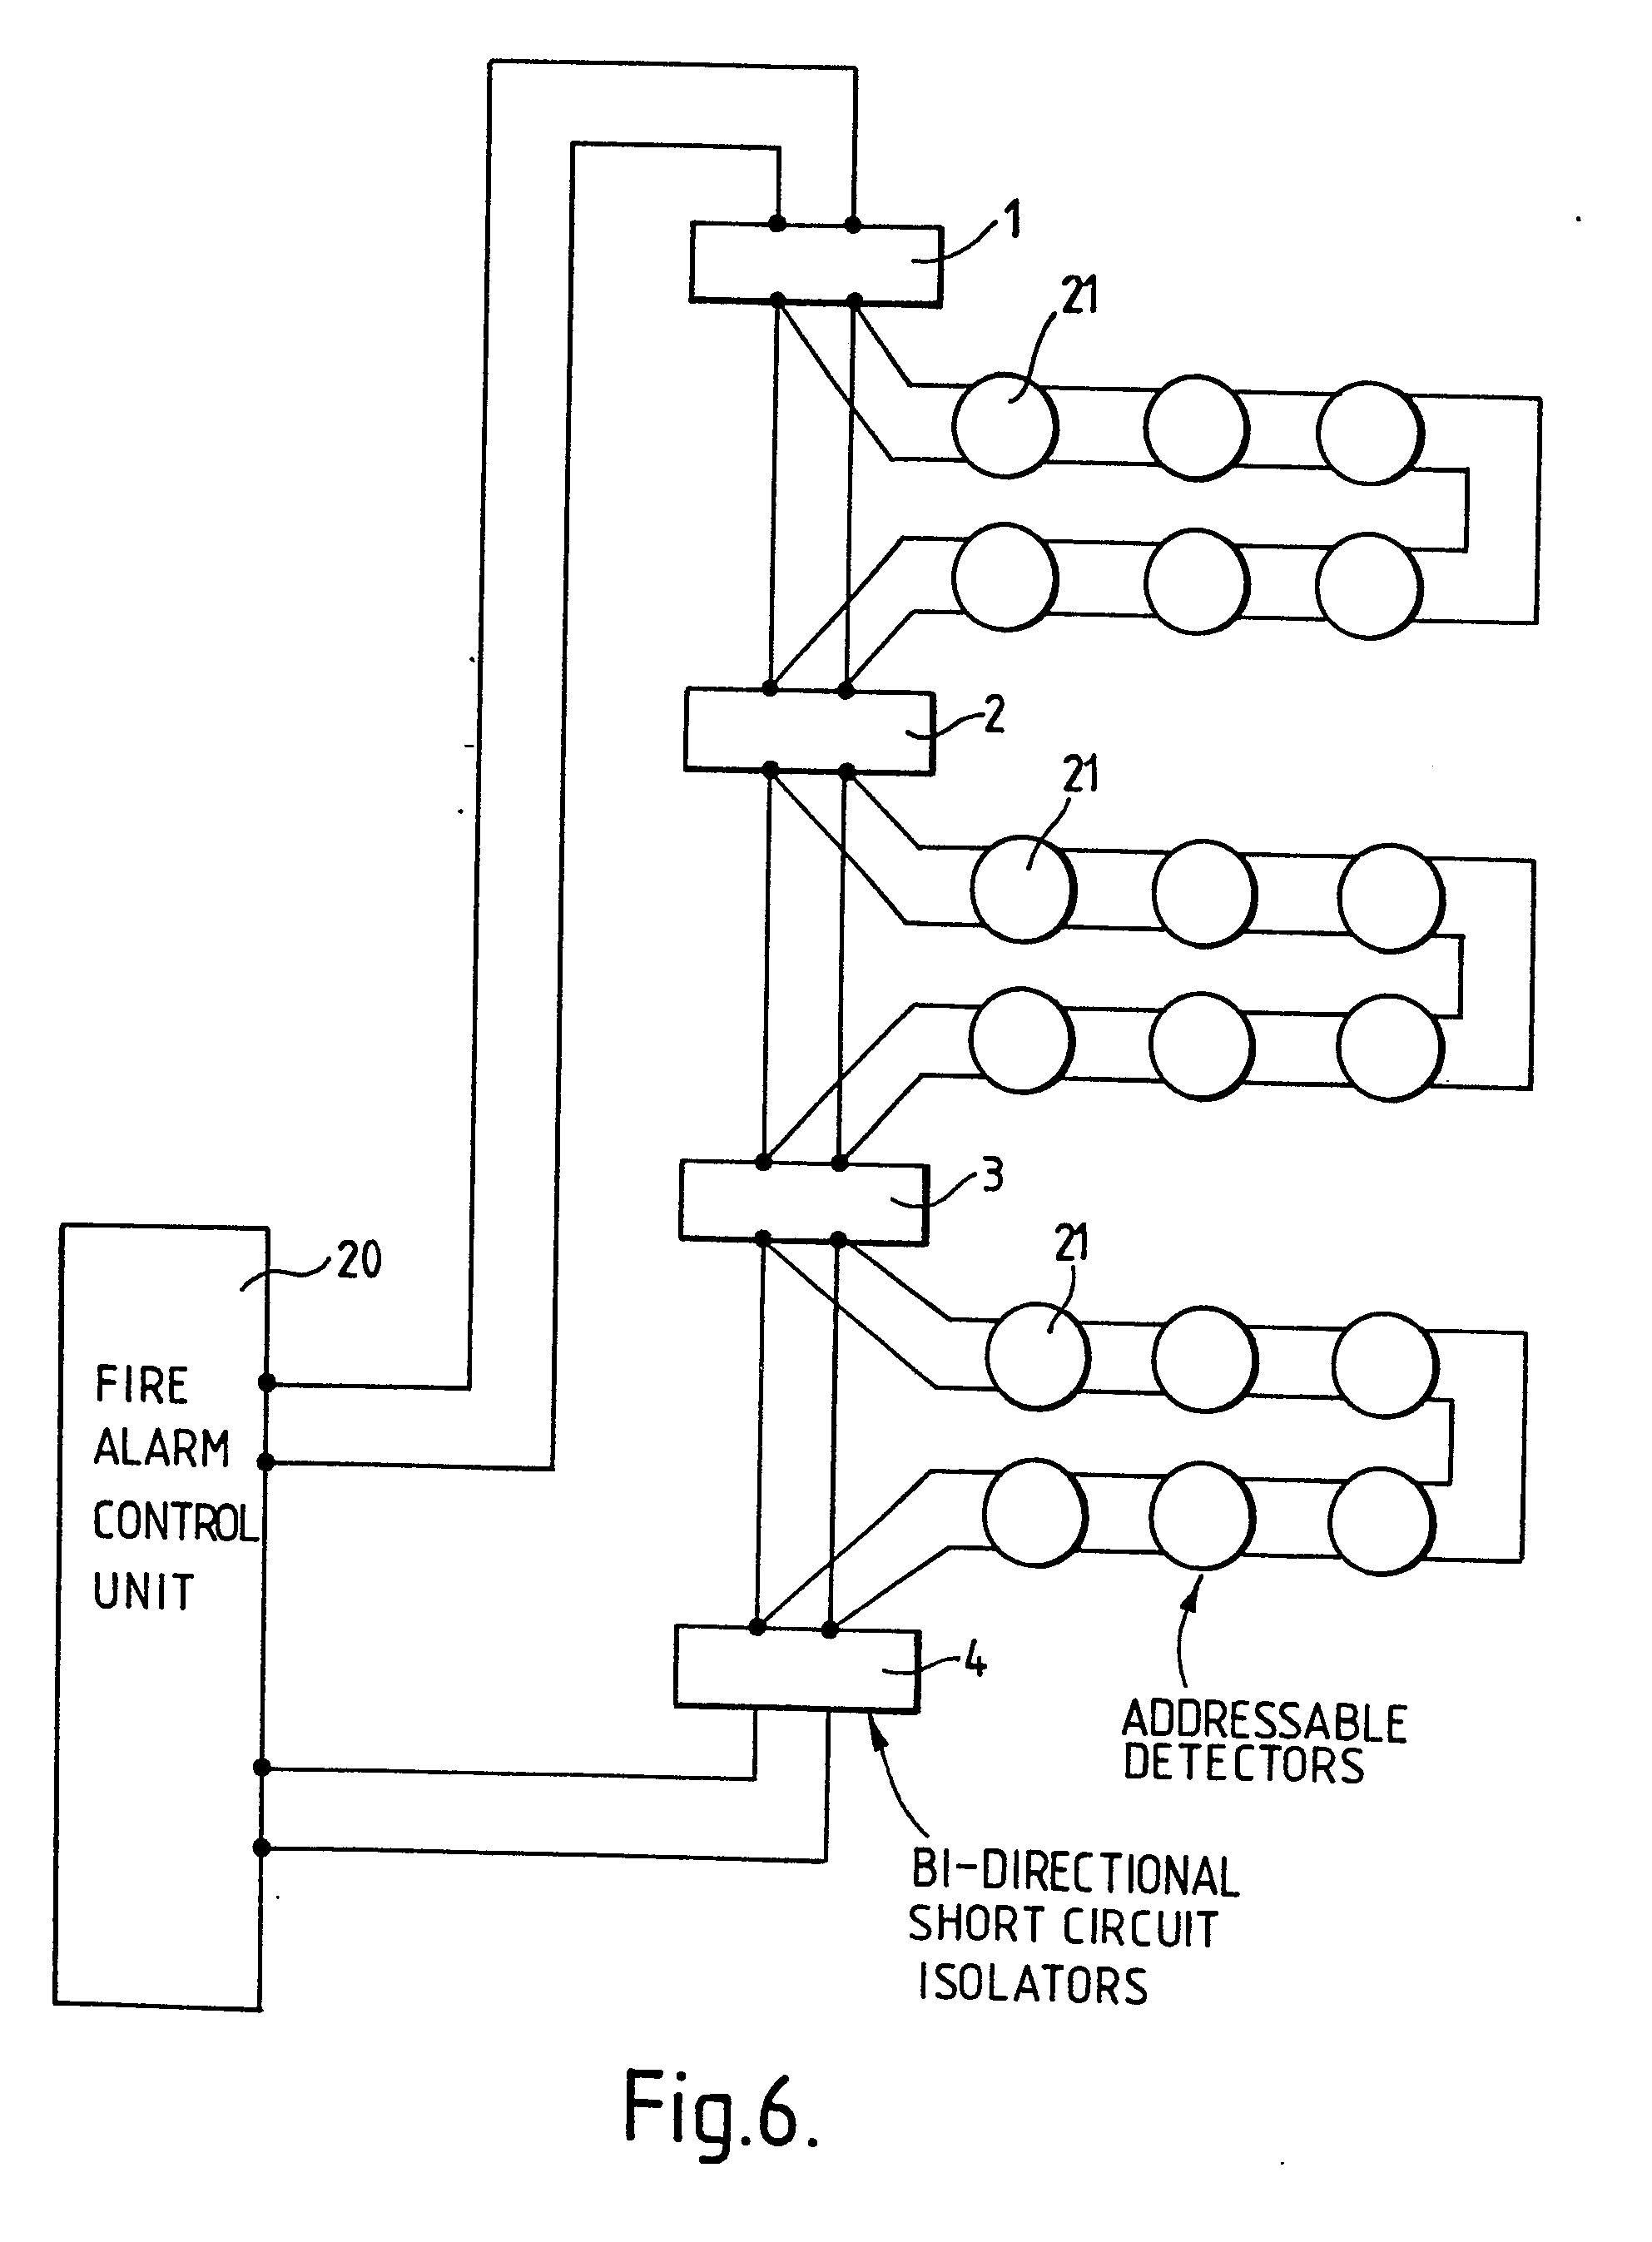 imgf0005 addressable fire alarm circuit diagram circuit and schematics fire alarm wiring schematic at love-stories.co